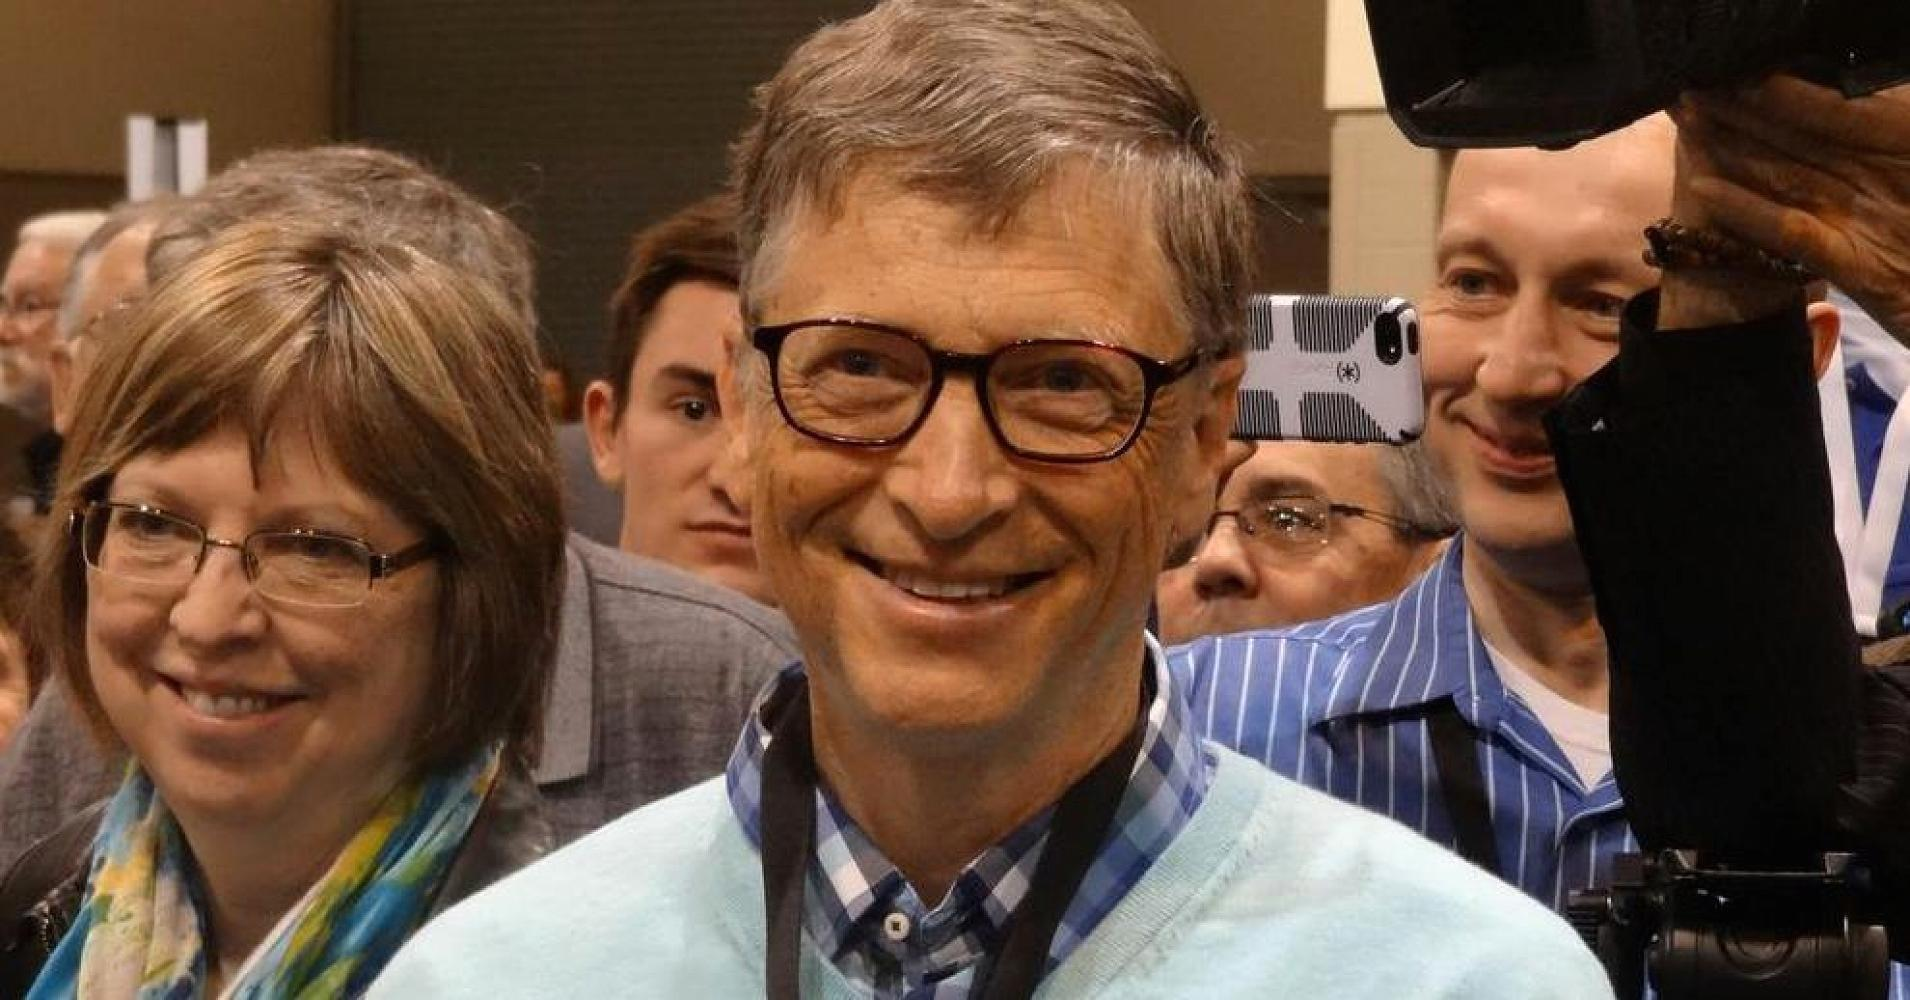 Bill Gates could become the world's first trillionaire